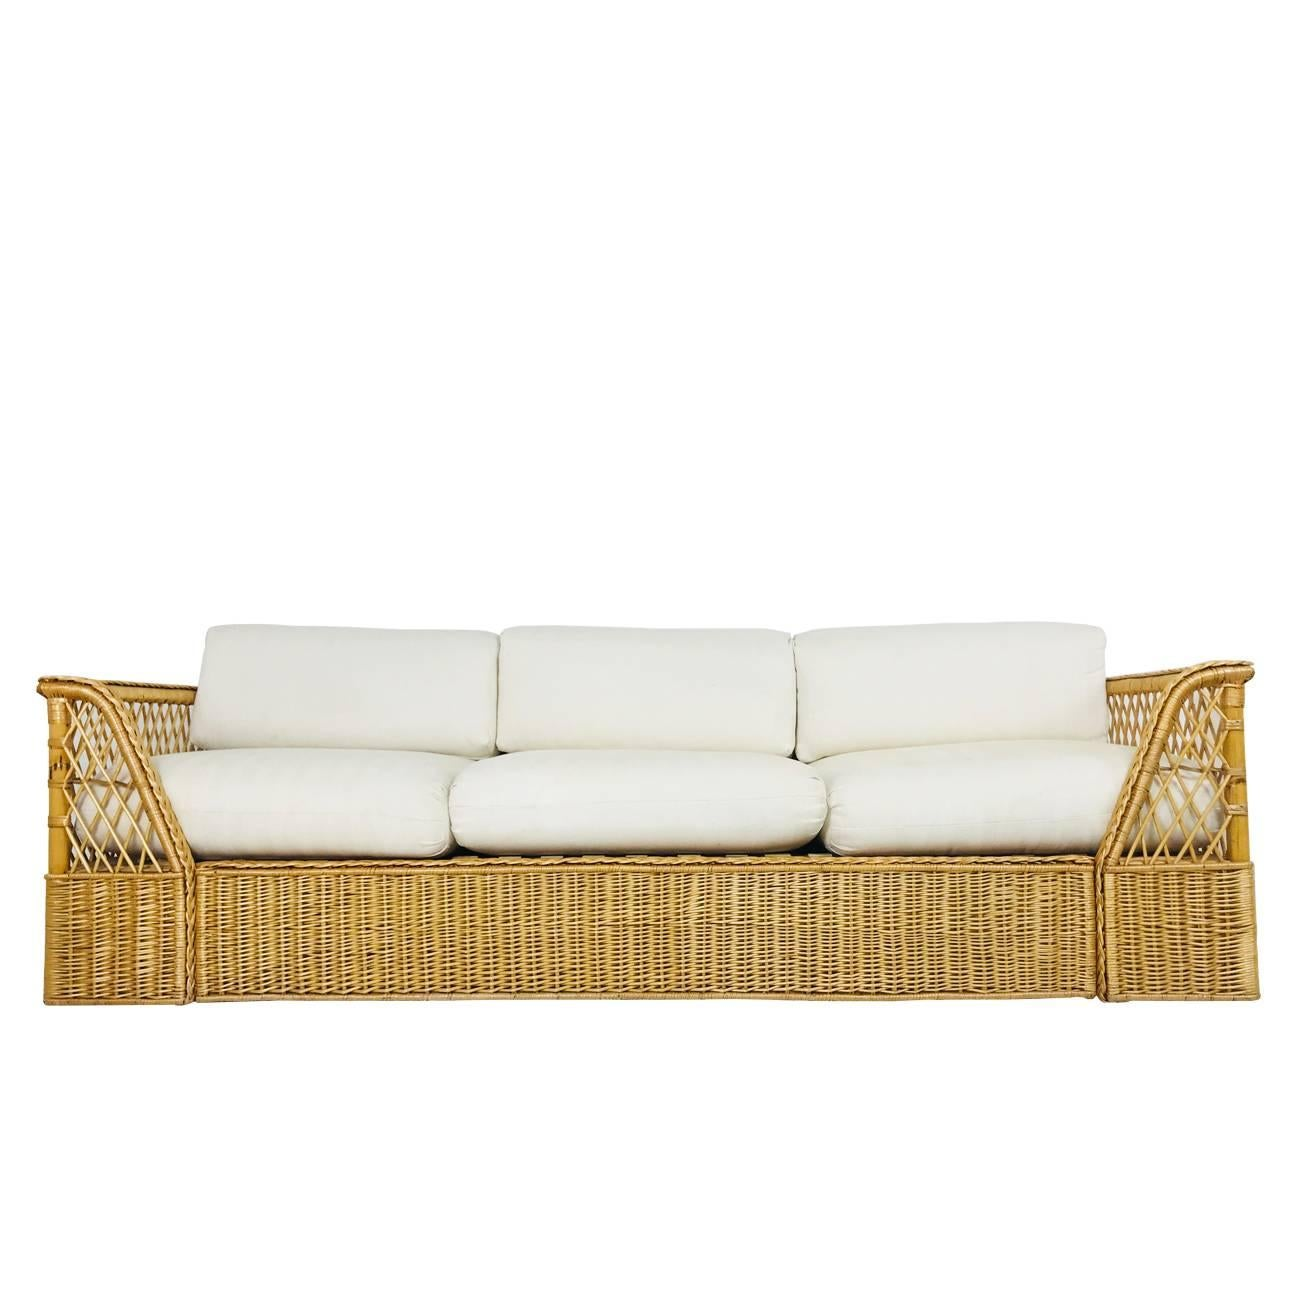 Ordinaire Rattan Sofa With Upholstered Cushions By McGuire For Sale